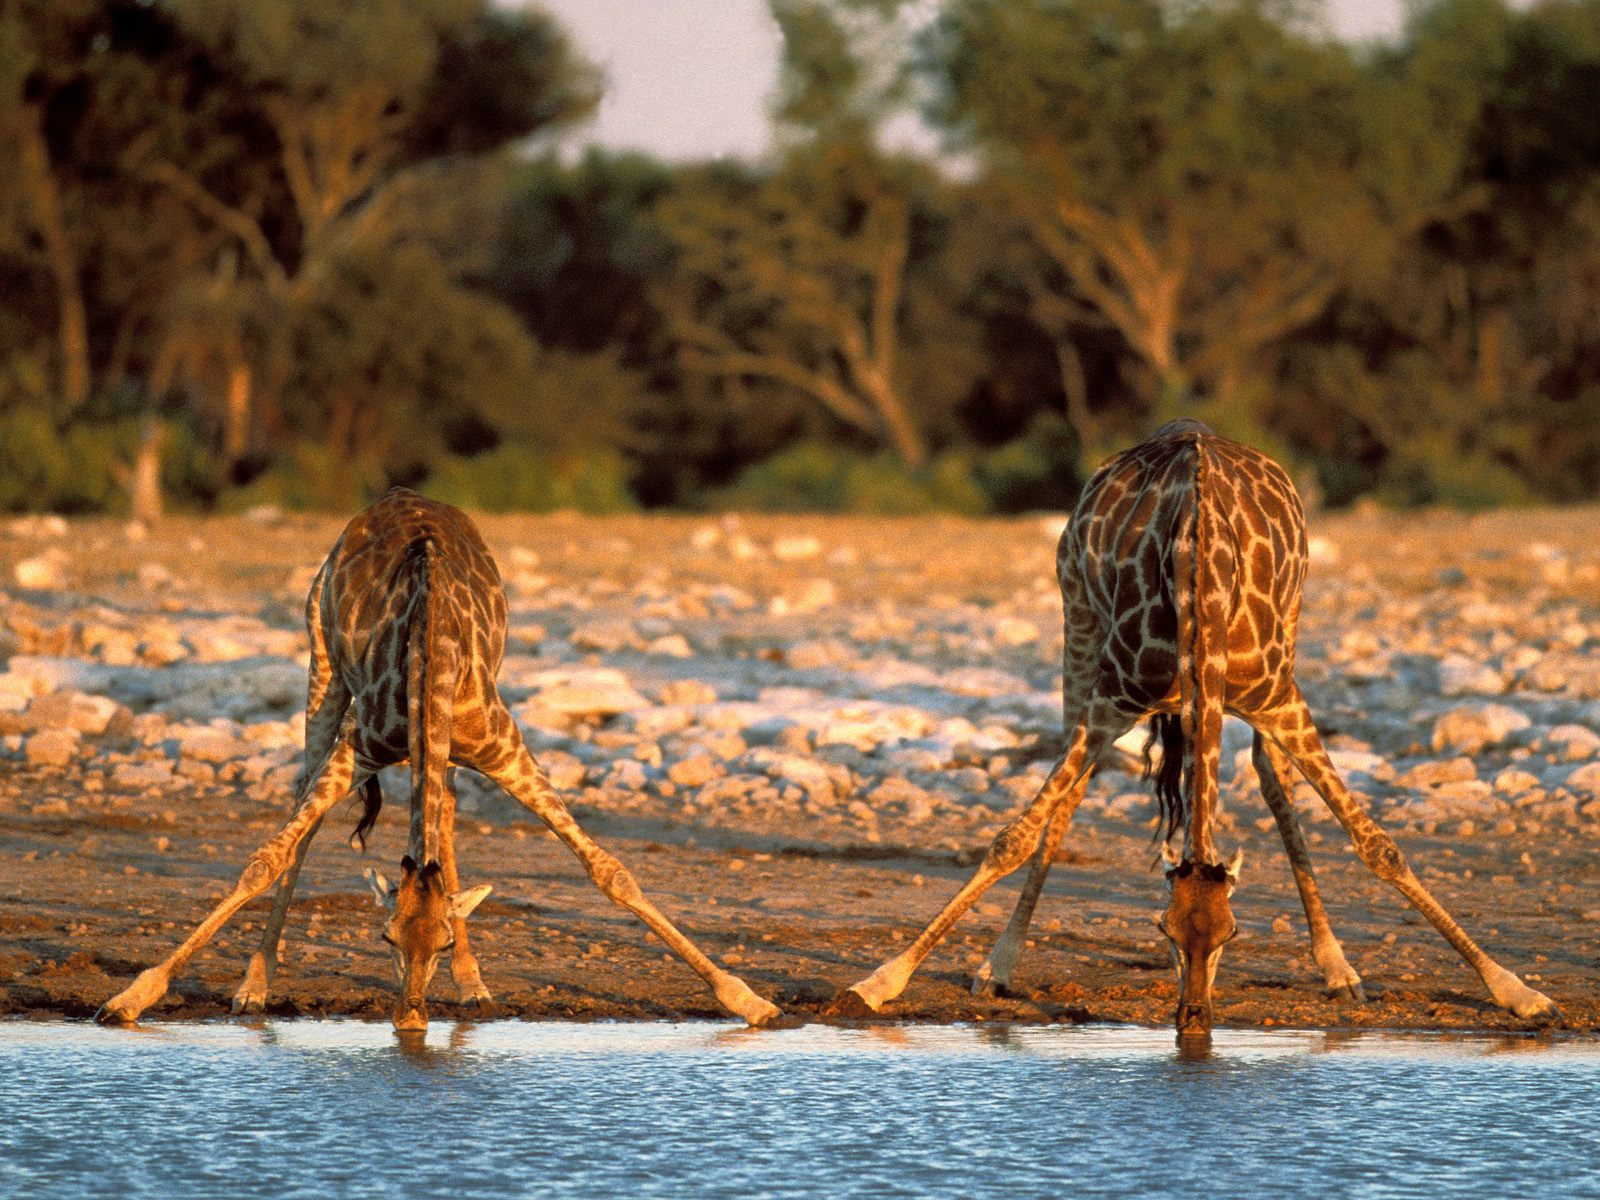 animals+drinking++giraffe+dangerous+african+safari+animals+africa ...